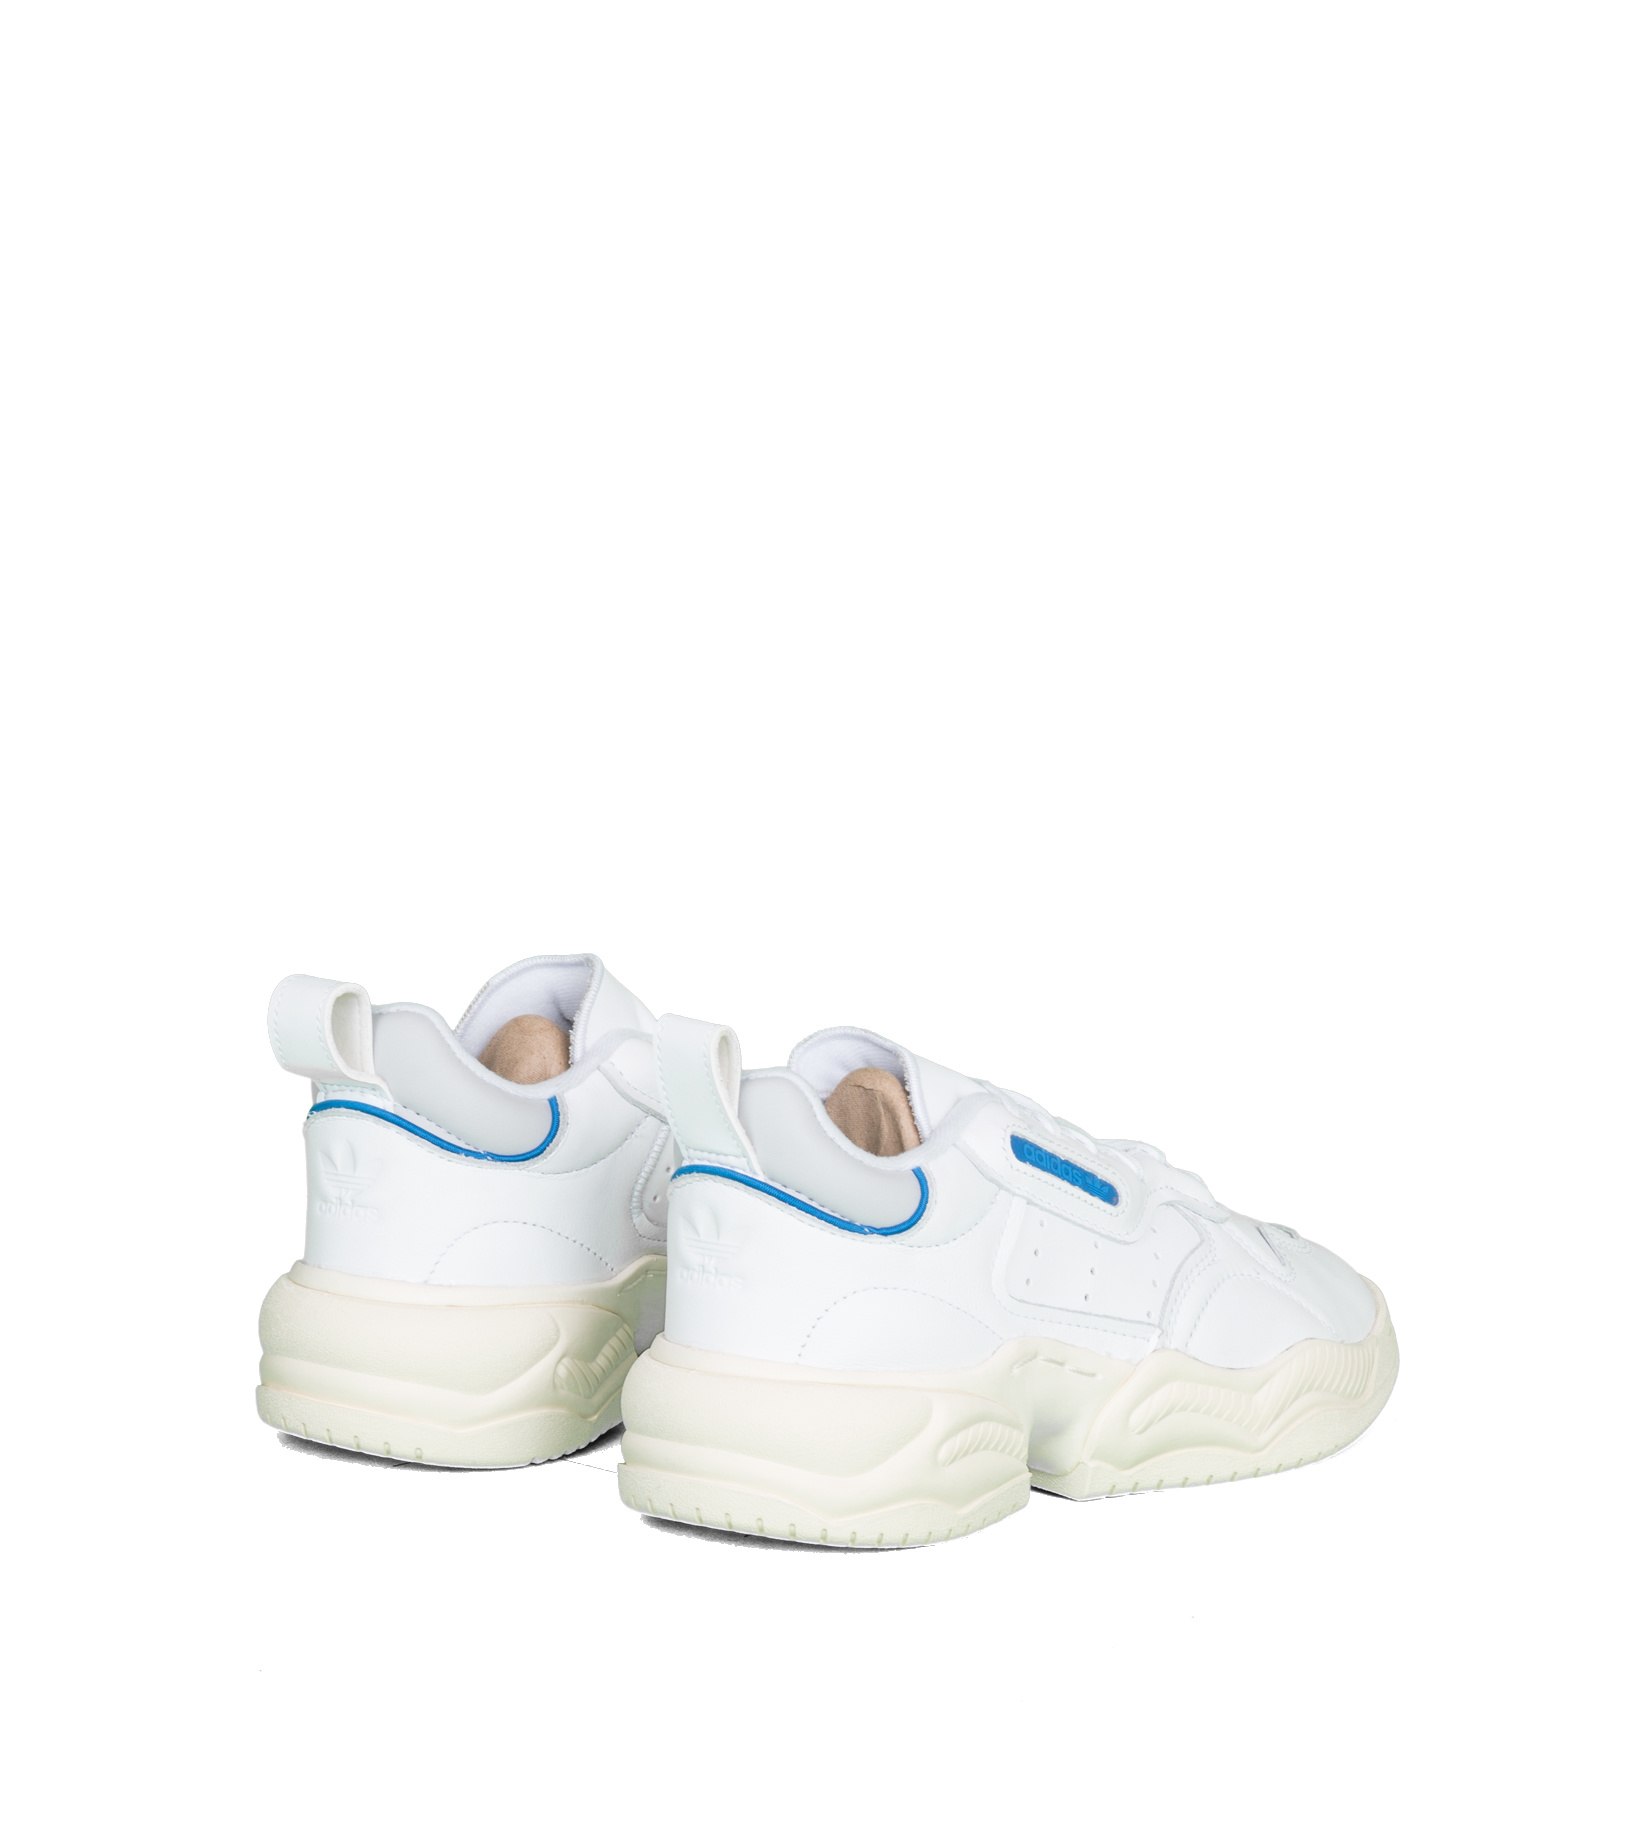 "Supercourt RX ""White/Blue""-2"